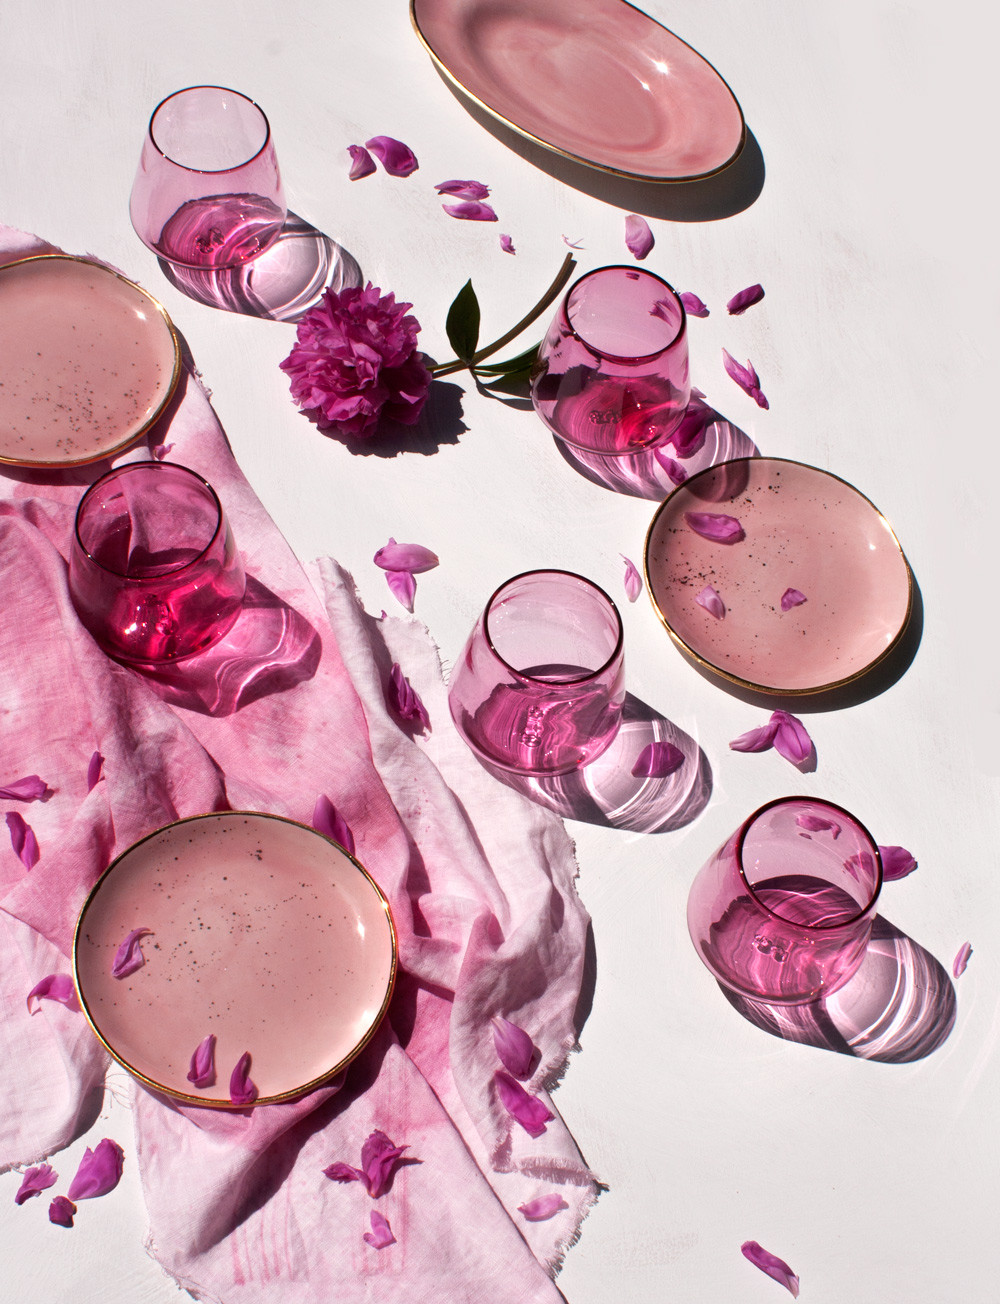 suite-one-studio-peony-pink-glassware-with-peony-petals-and-oval-platter-in-rose-with-gold-and-dessert-plates-in-rose-with-gold-splatter-vertical.jpg